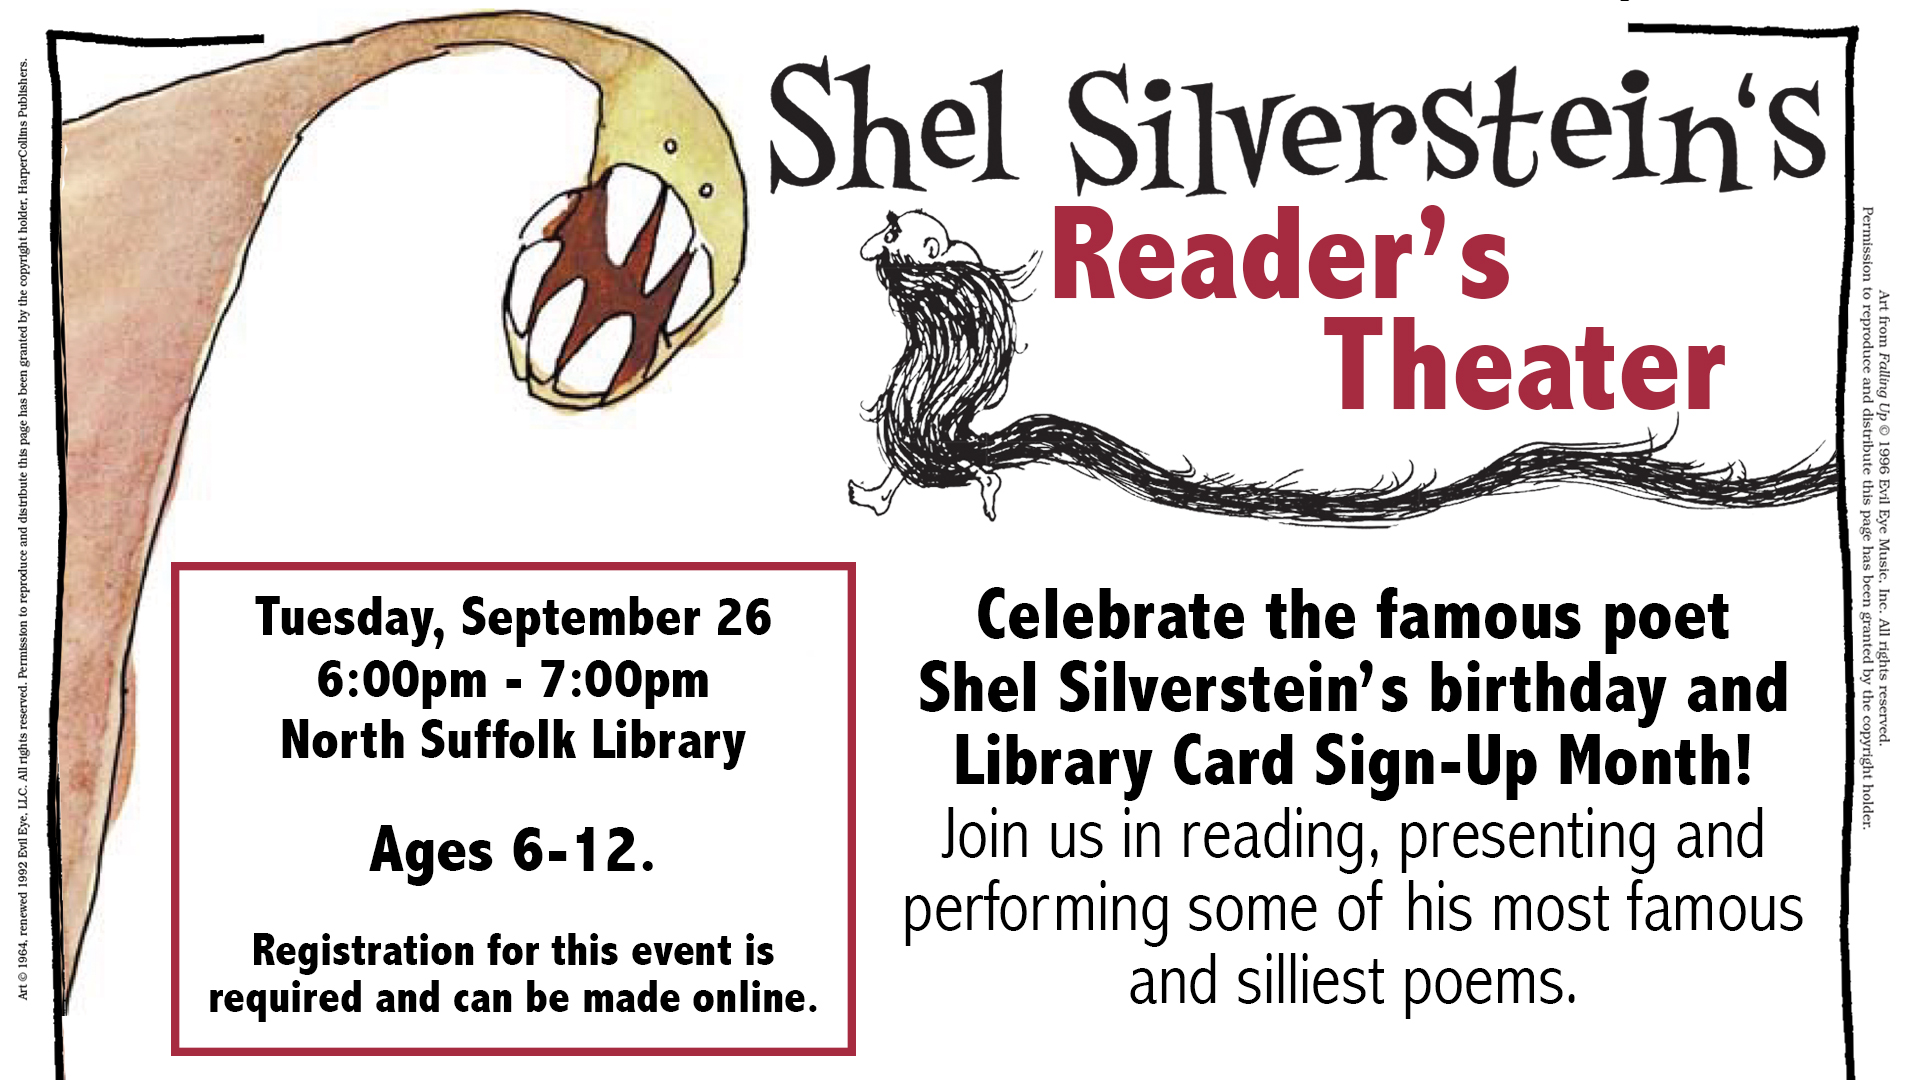 Shel Silverstein's Reader's Theater: Library Card Sign up Month